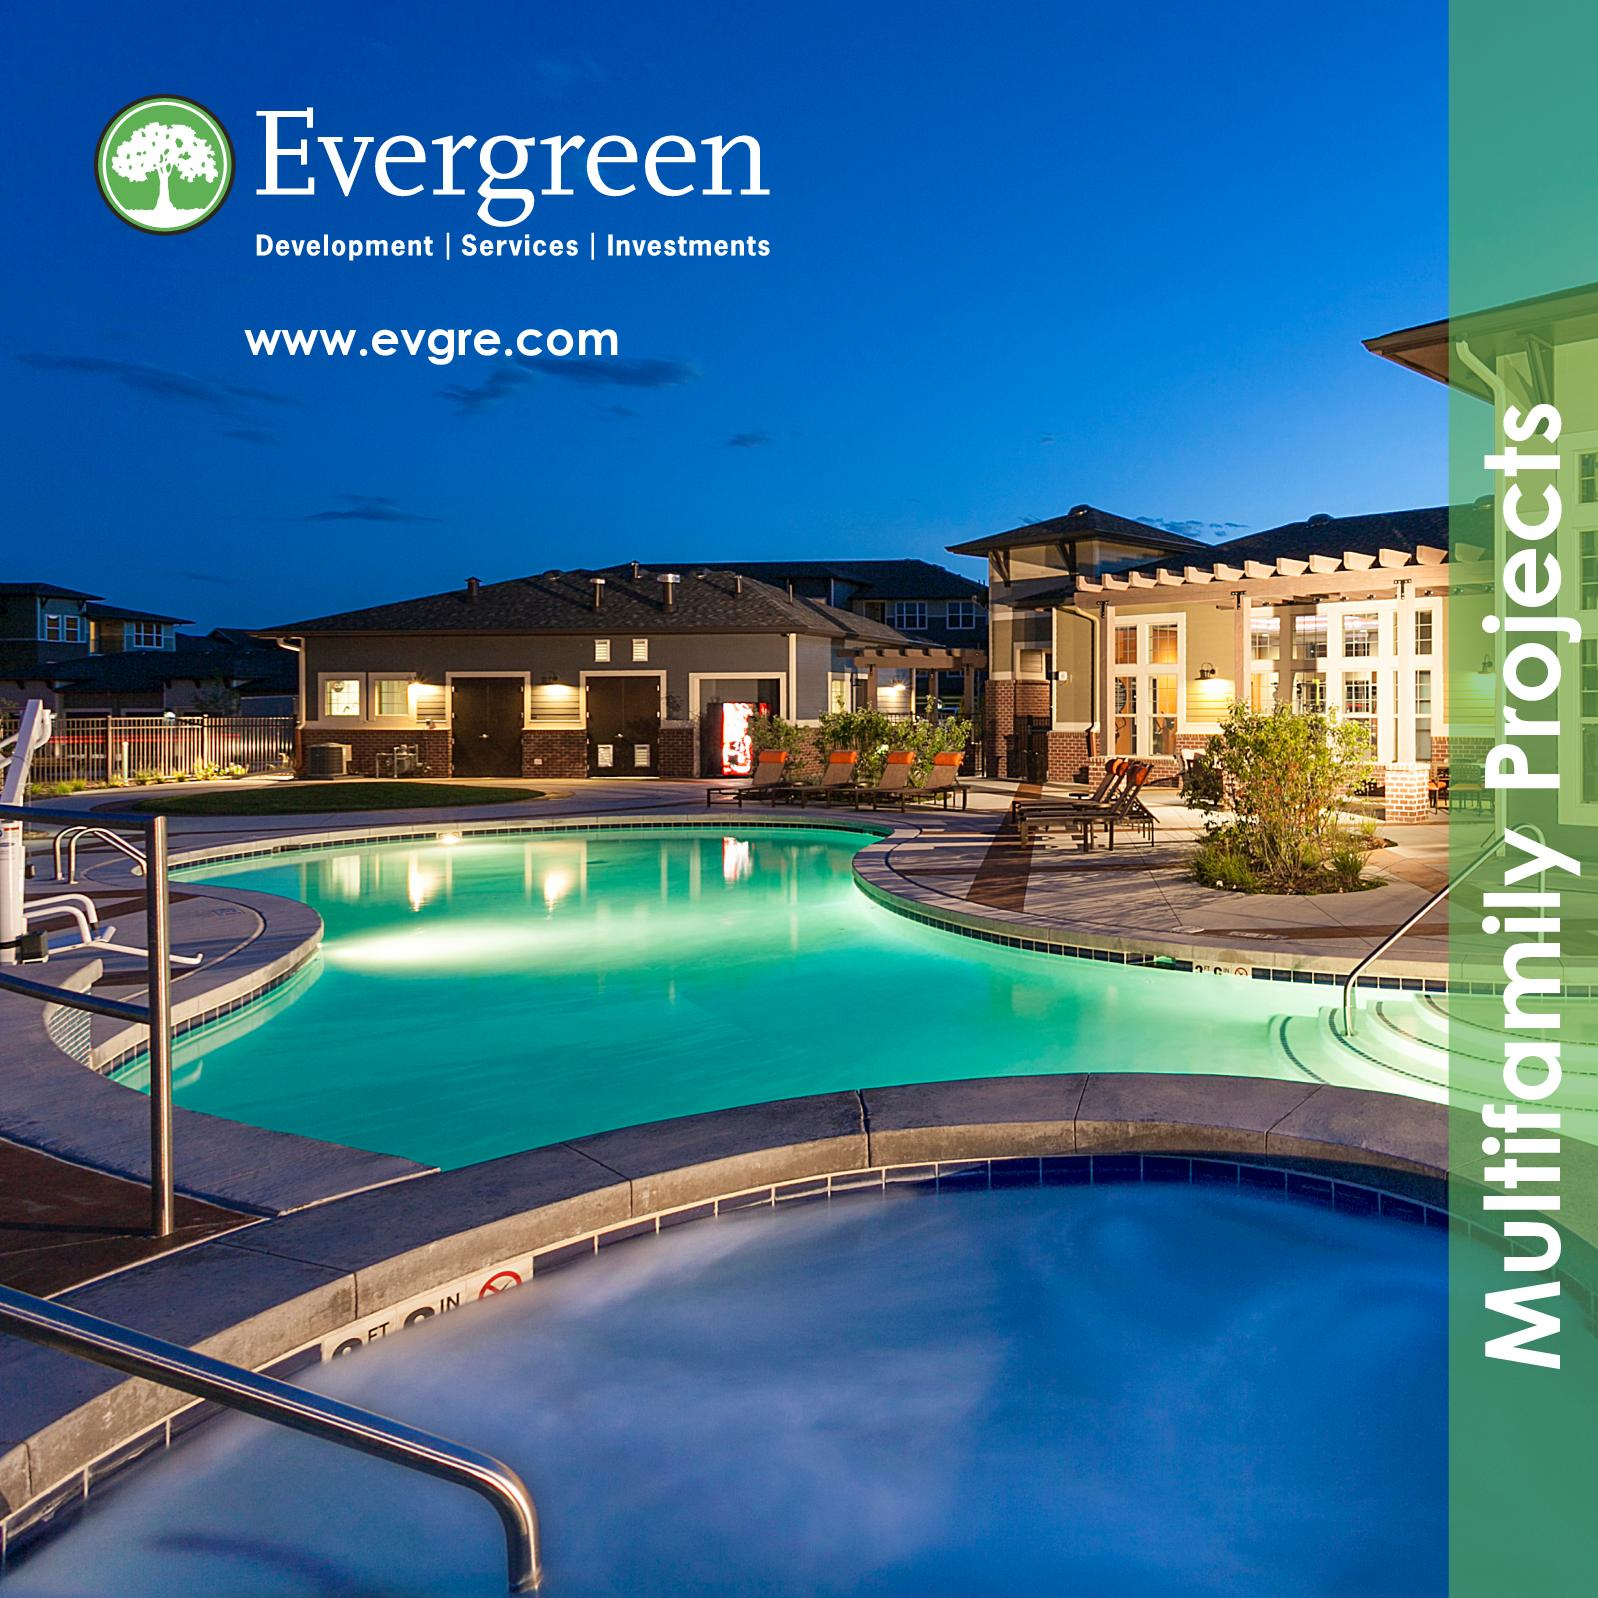 Evergreen investments peoria az hotels transact investment